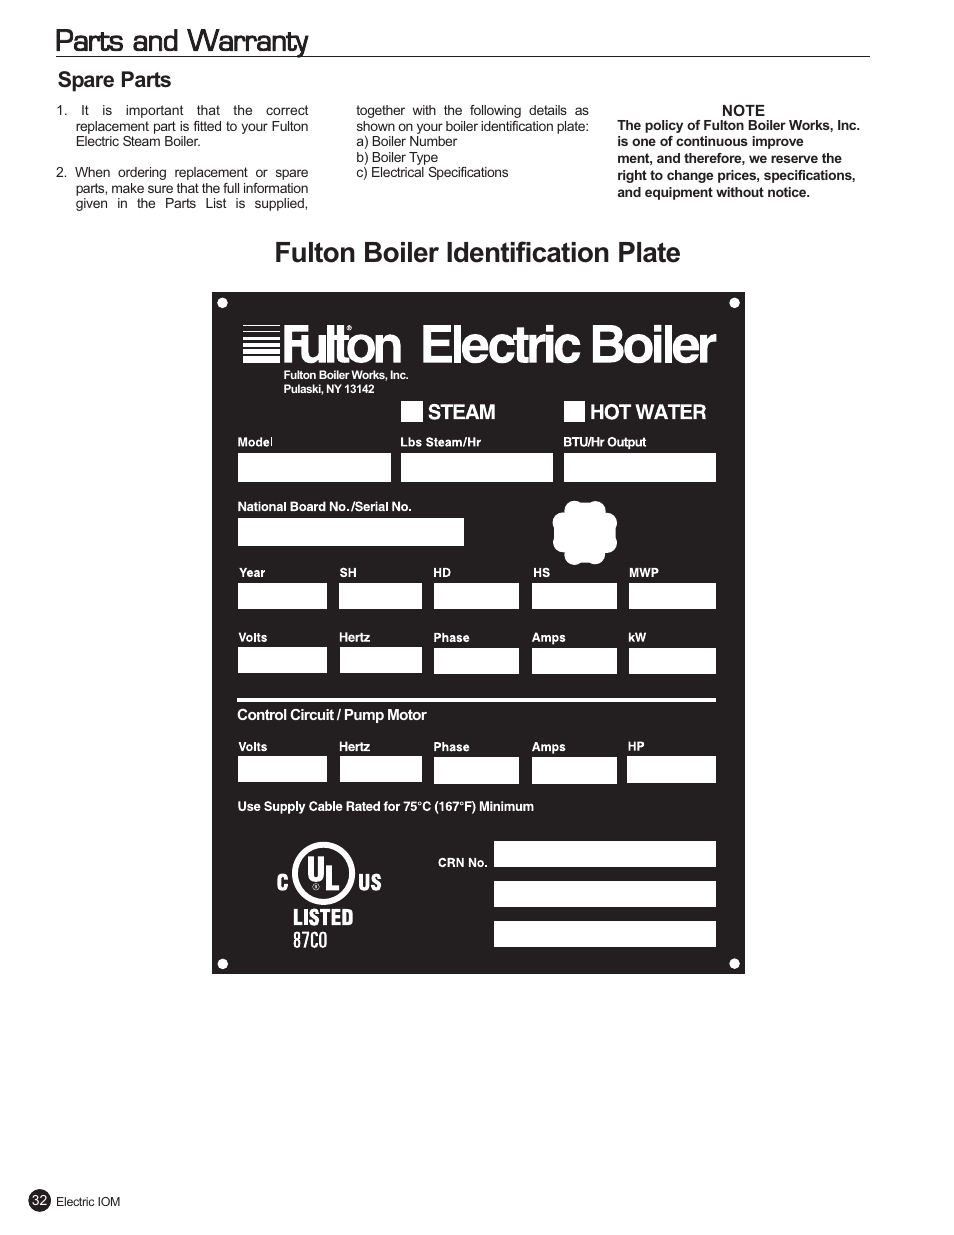 Parts And Warranty Fulton Boiler Identification Plate